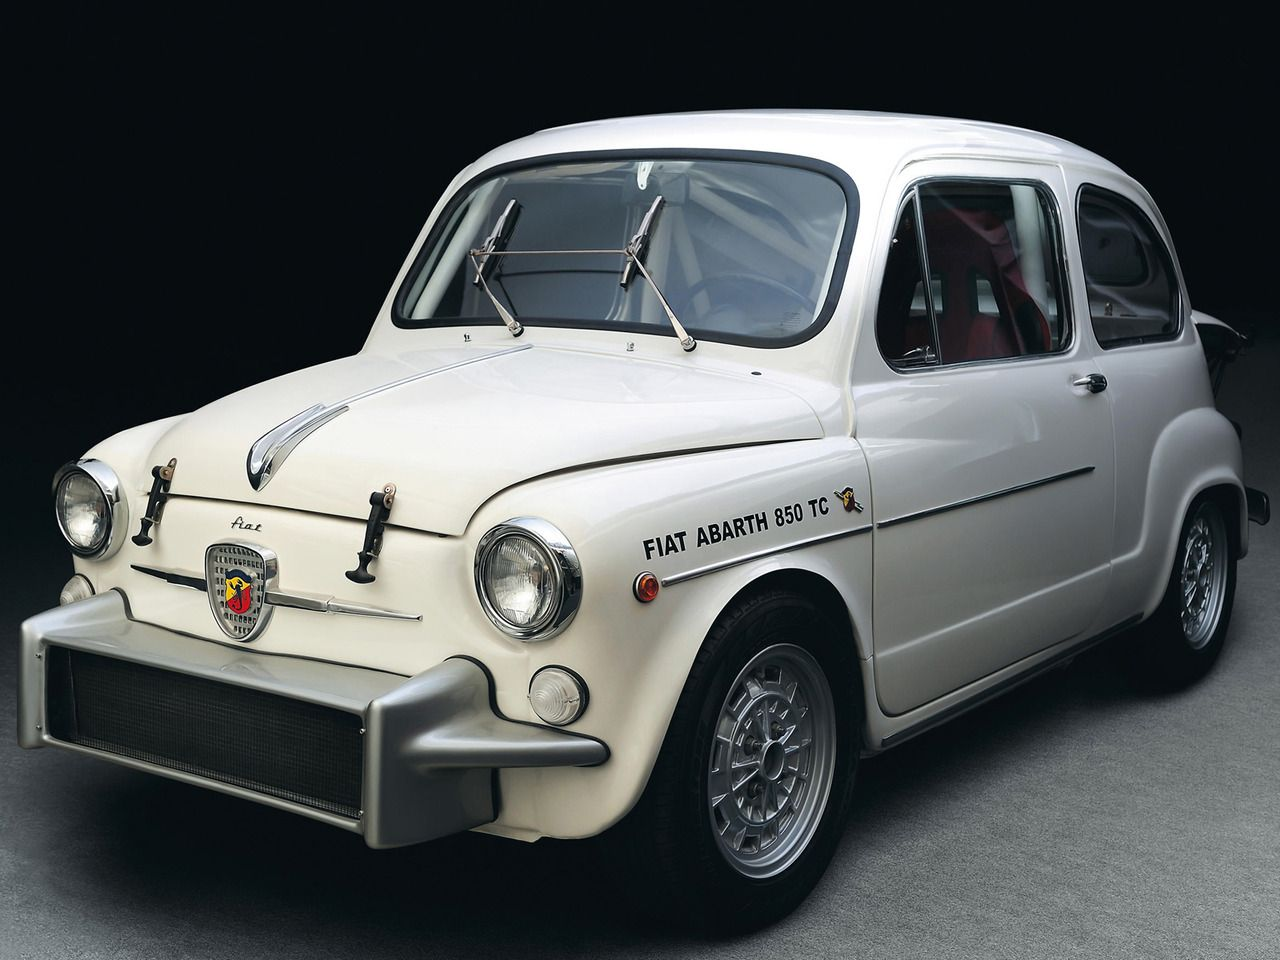 Fiat Abarth 850 In My Head Fiat Abarth Fiat Fiat 600